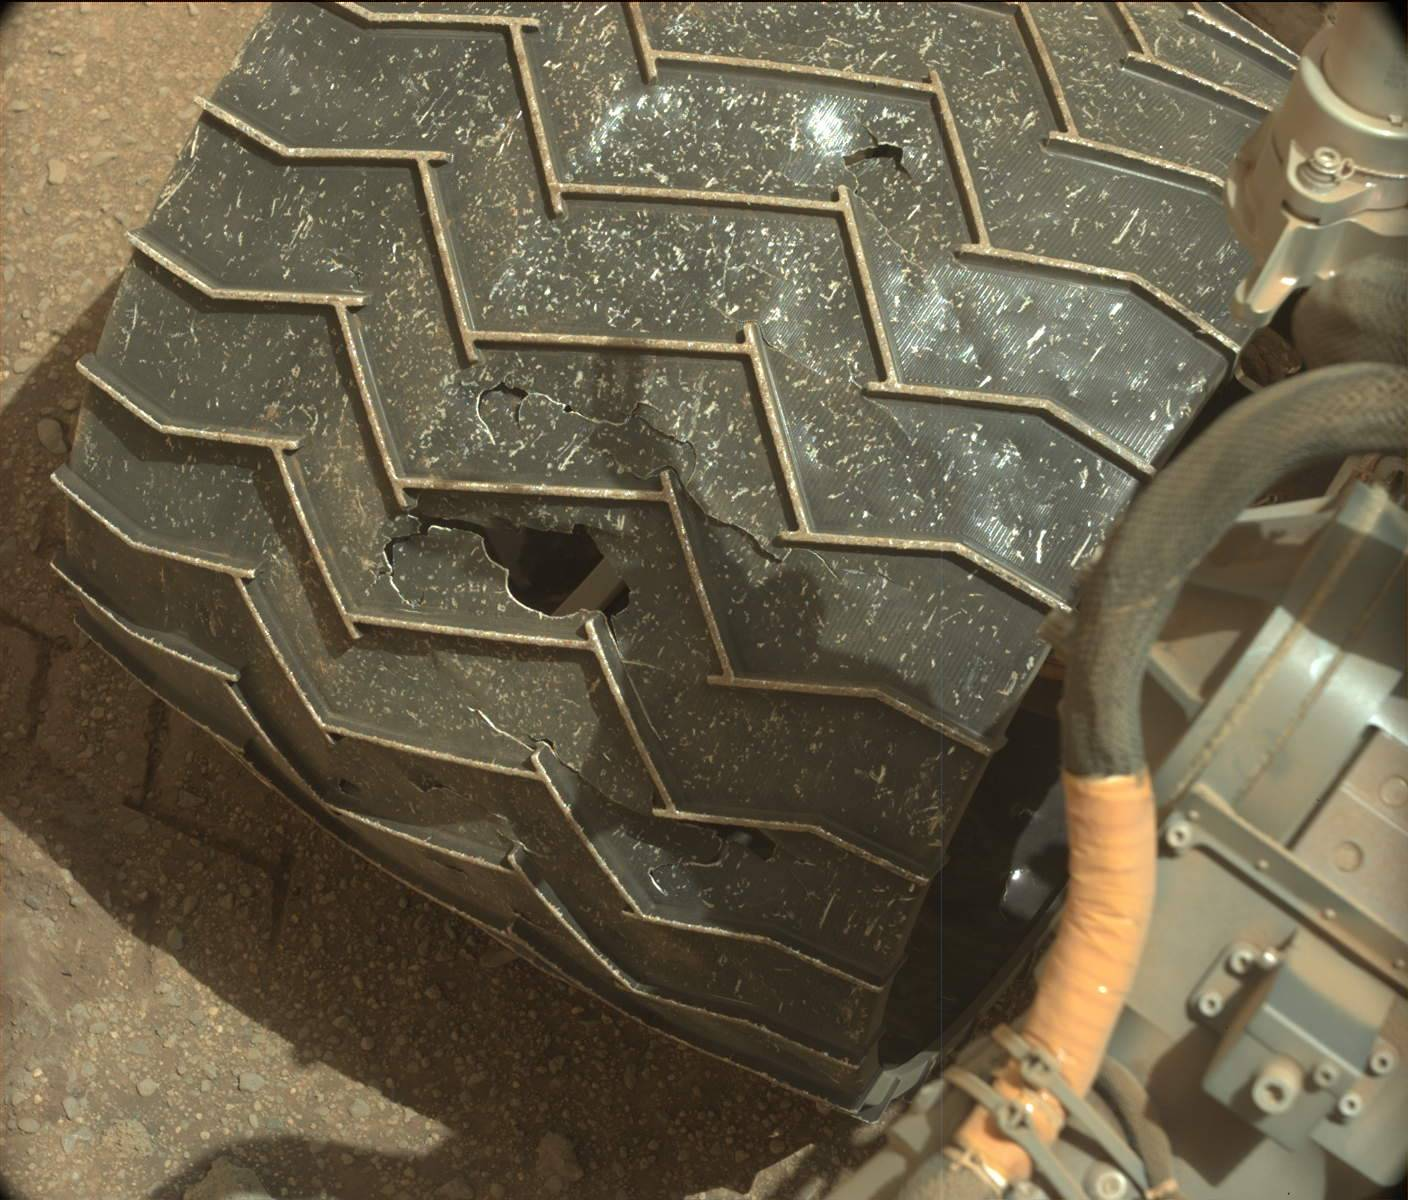 Wheel Worries: Mars Rover Curiosity Dealing With Damage